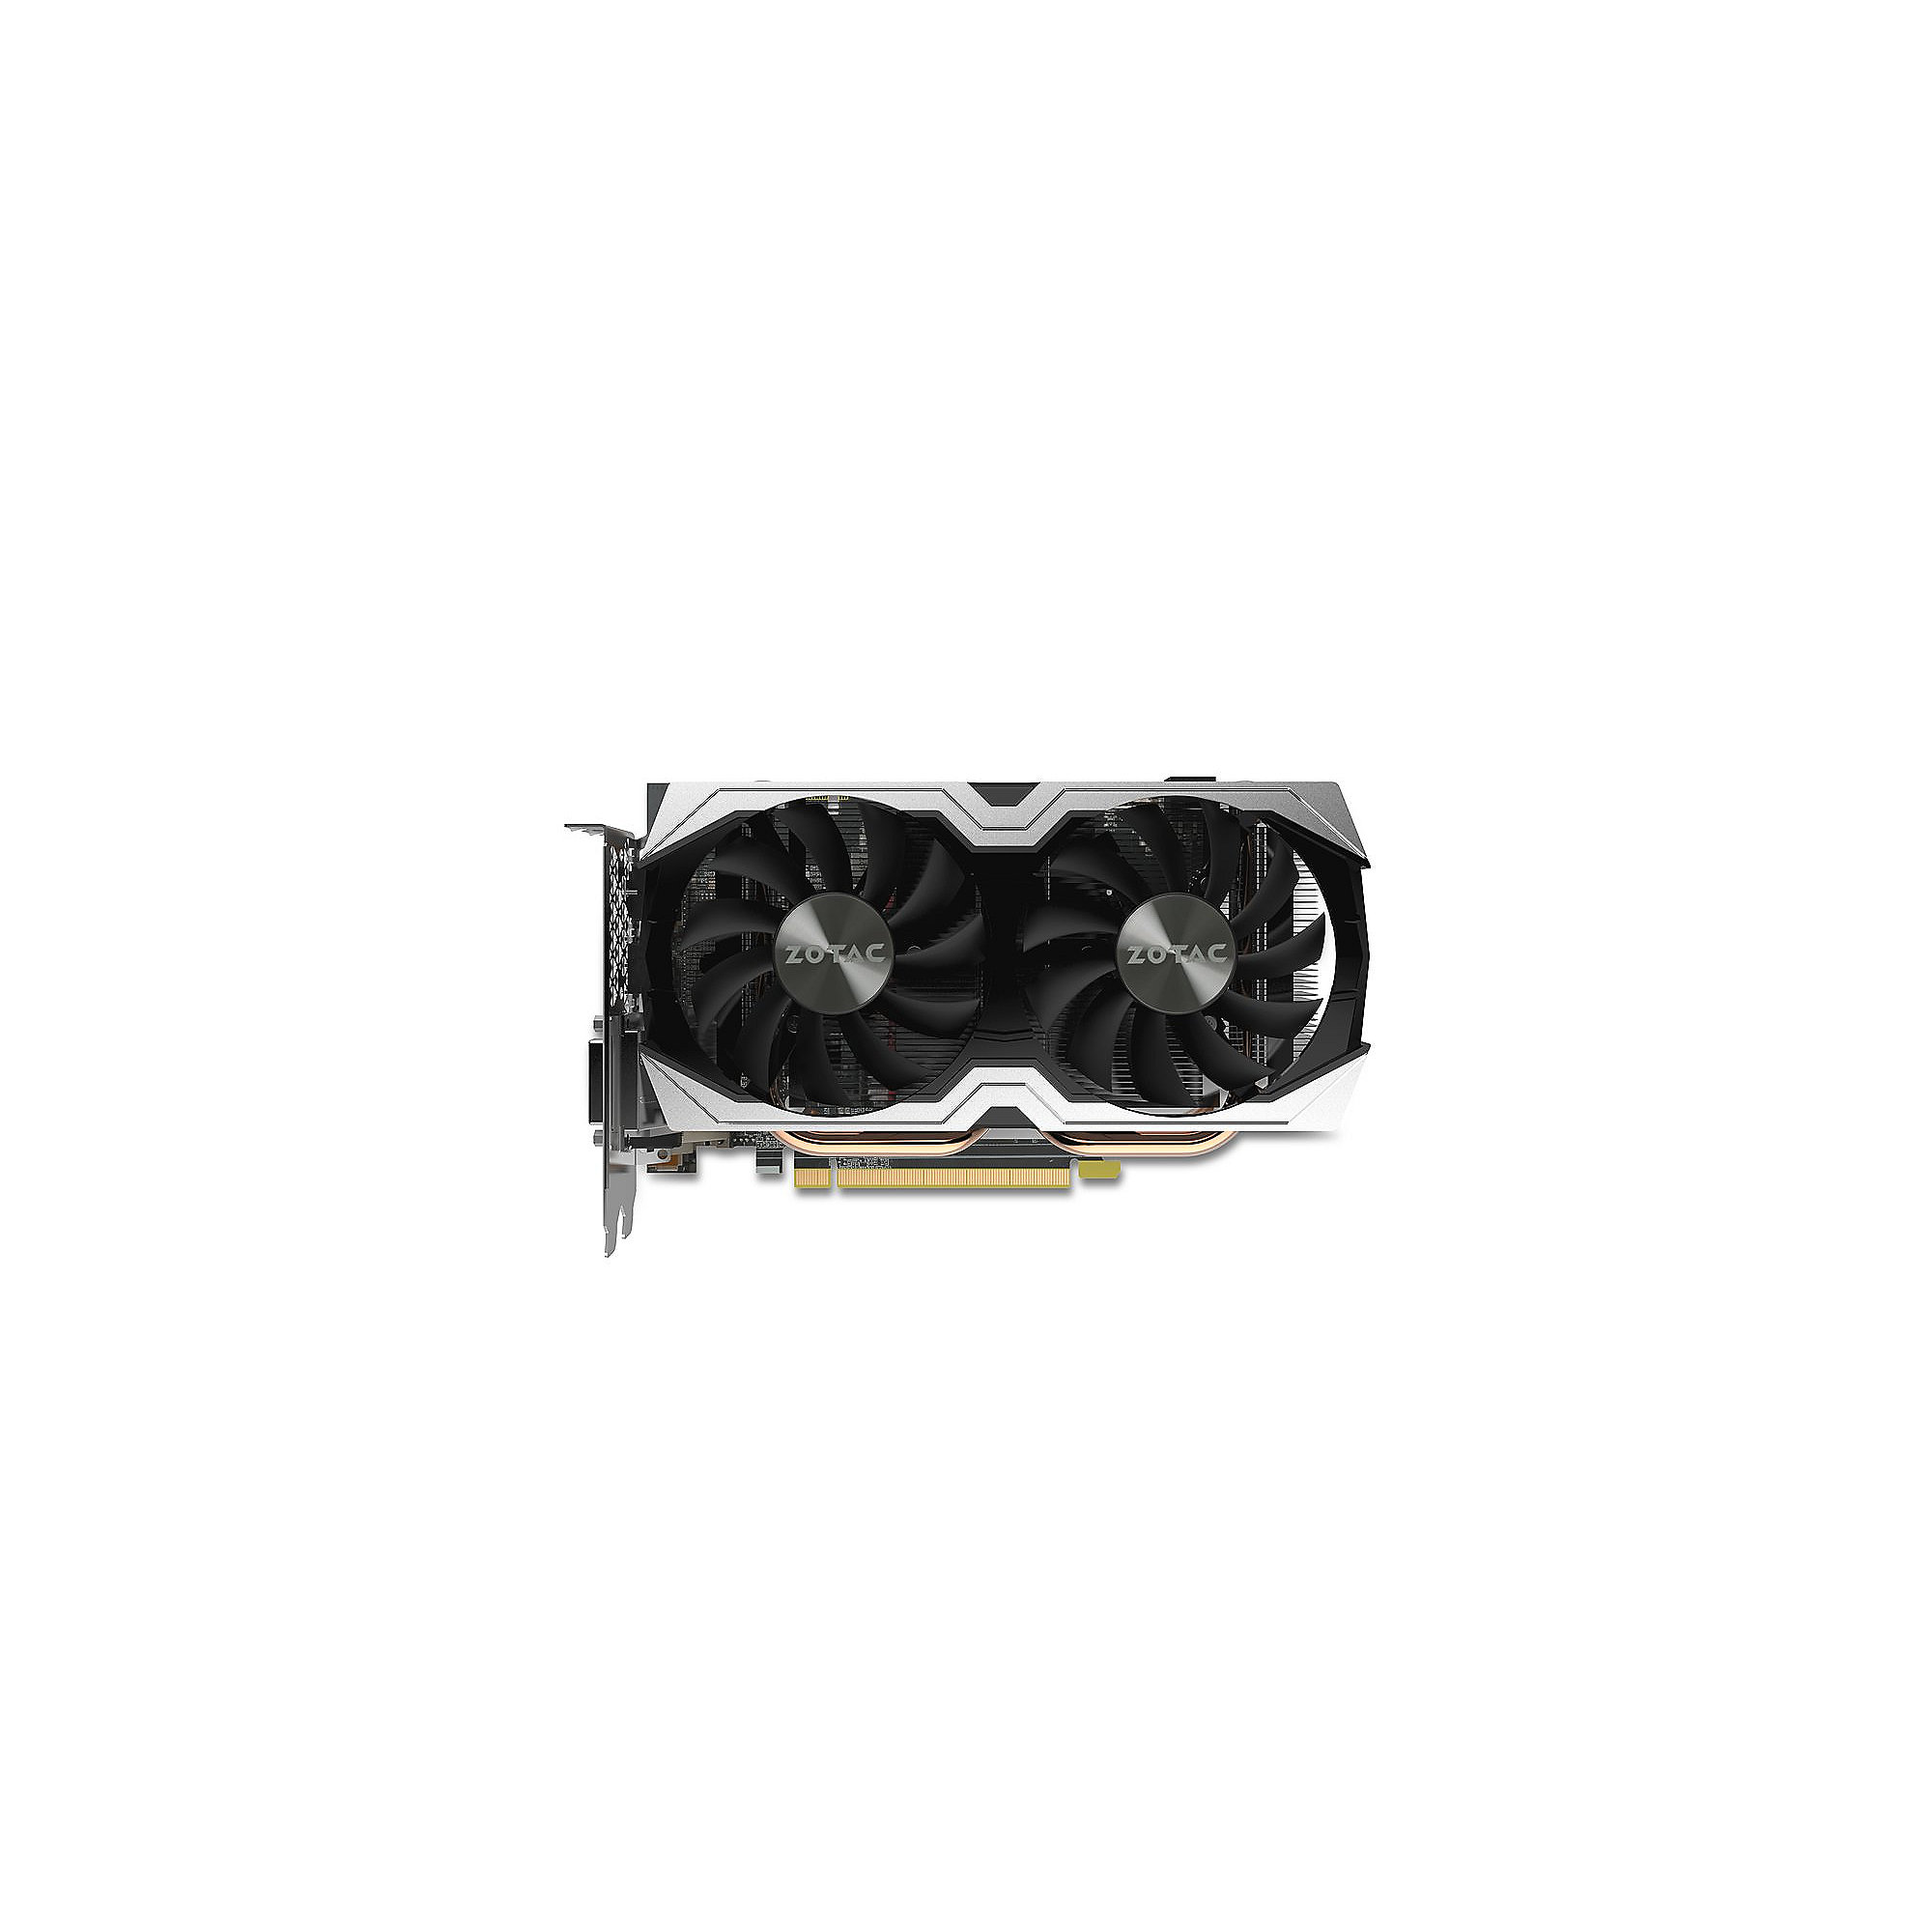 Zotac GeForce GTX 1070 Mini 8GB GDDR5 ITX Grafikkarte DVI/HDMI/3xDP